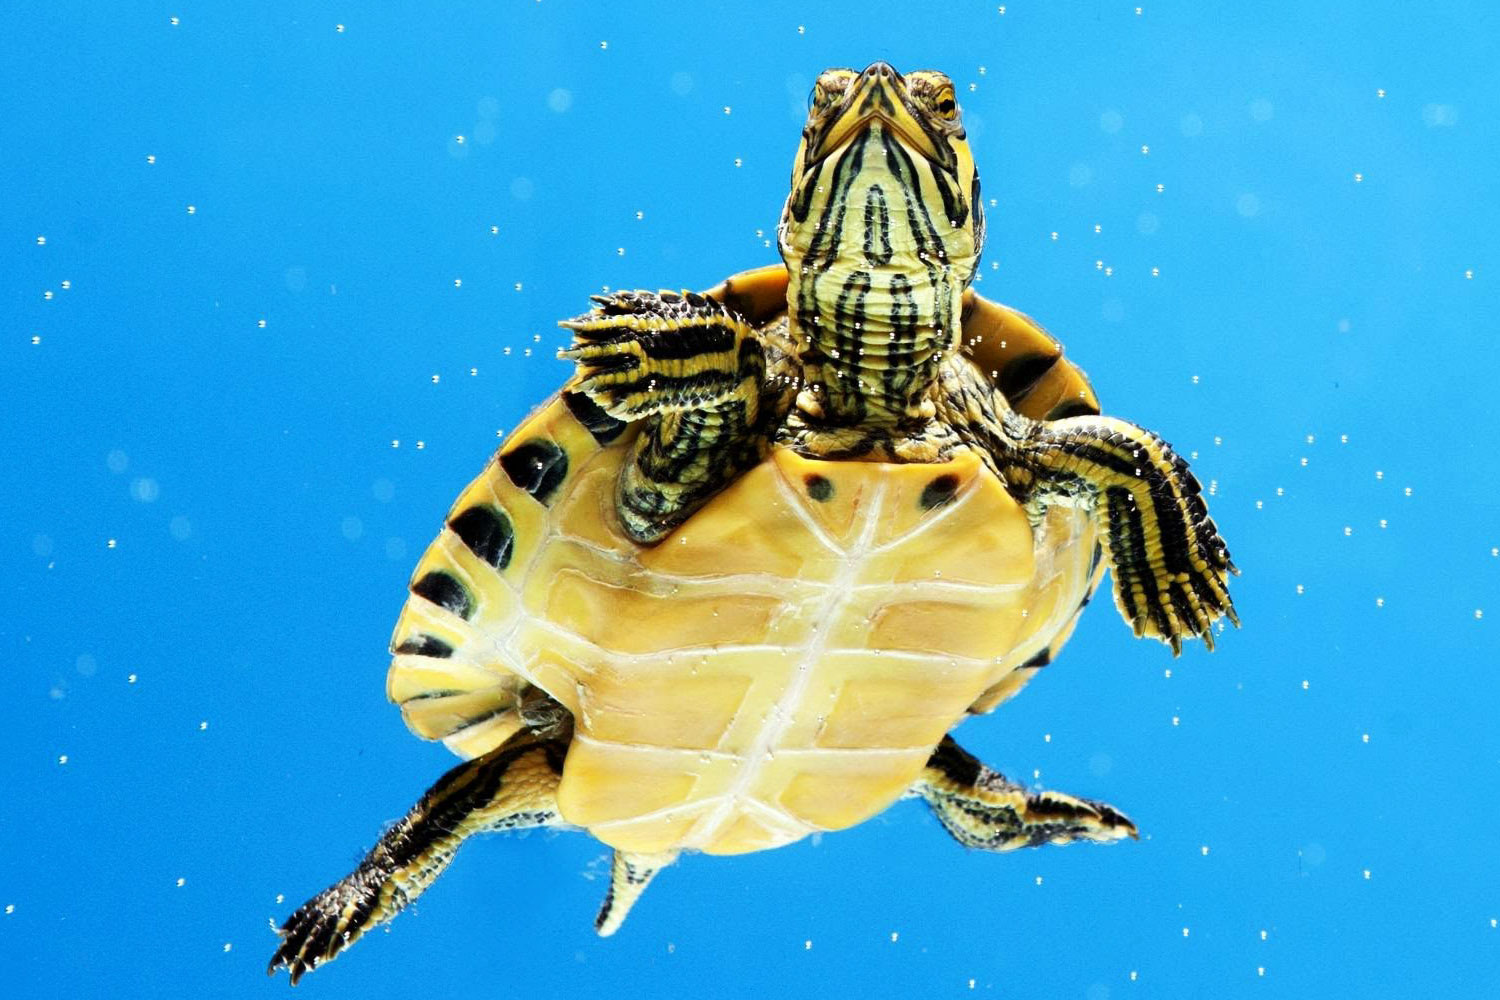 water turtles - Water turtles have large webbed feet and live in water most of the time, coming out occasionally to bask in sunlight. Captive care of water turtles is typically in ponds or large aquariums.